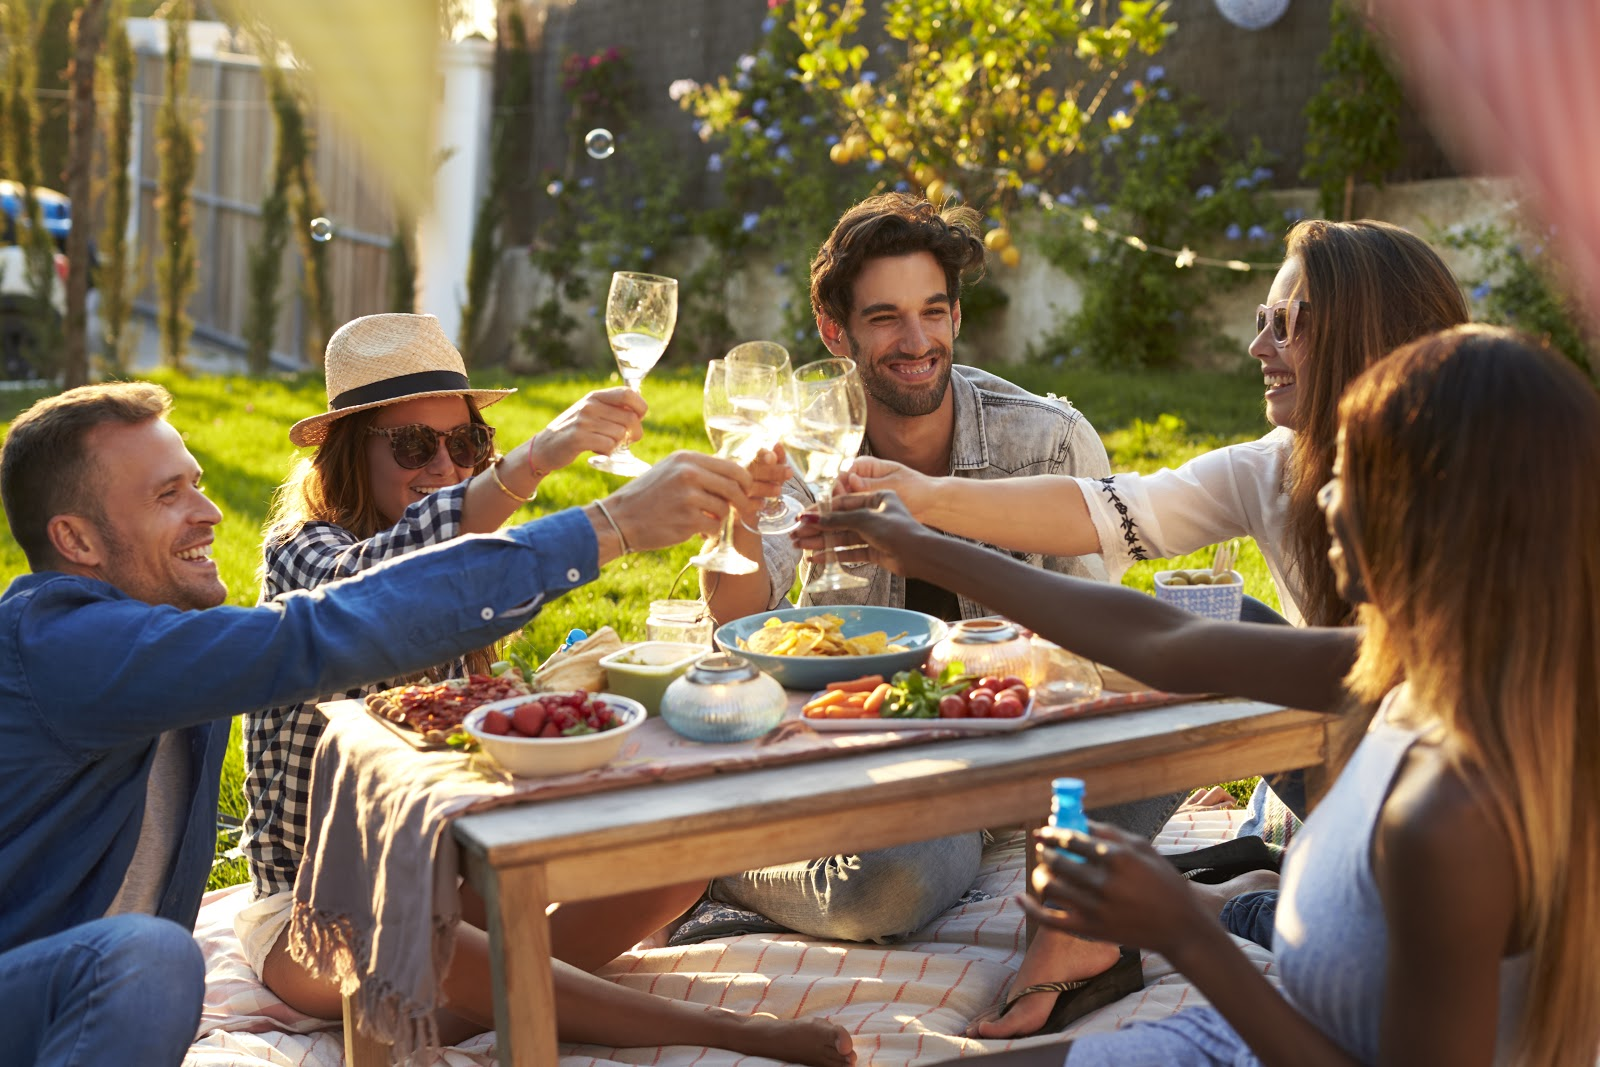 backyard picnic ideas: A group of friends raising their glasses in a toast